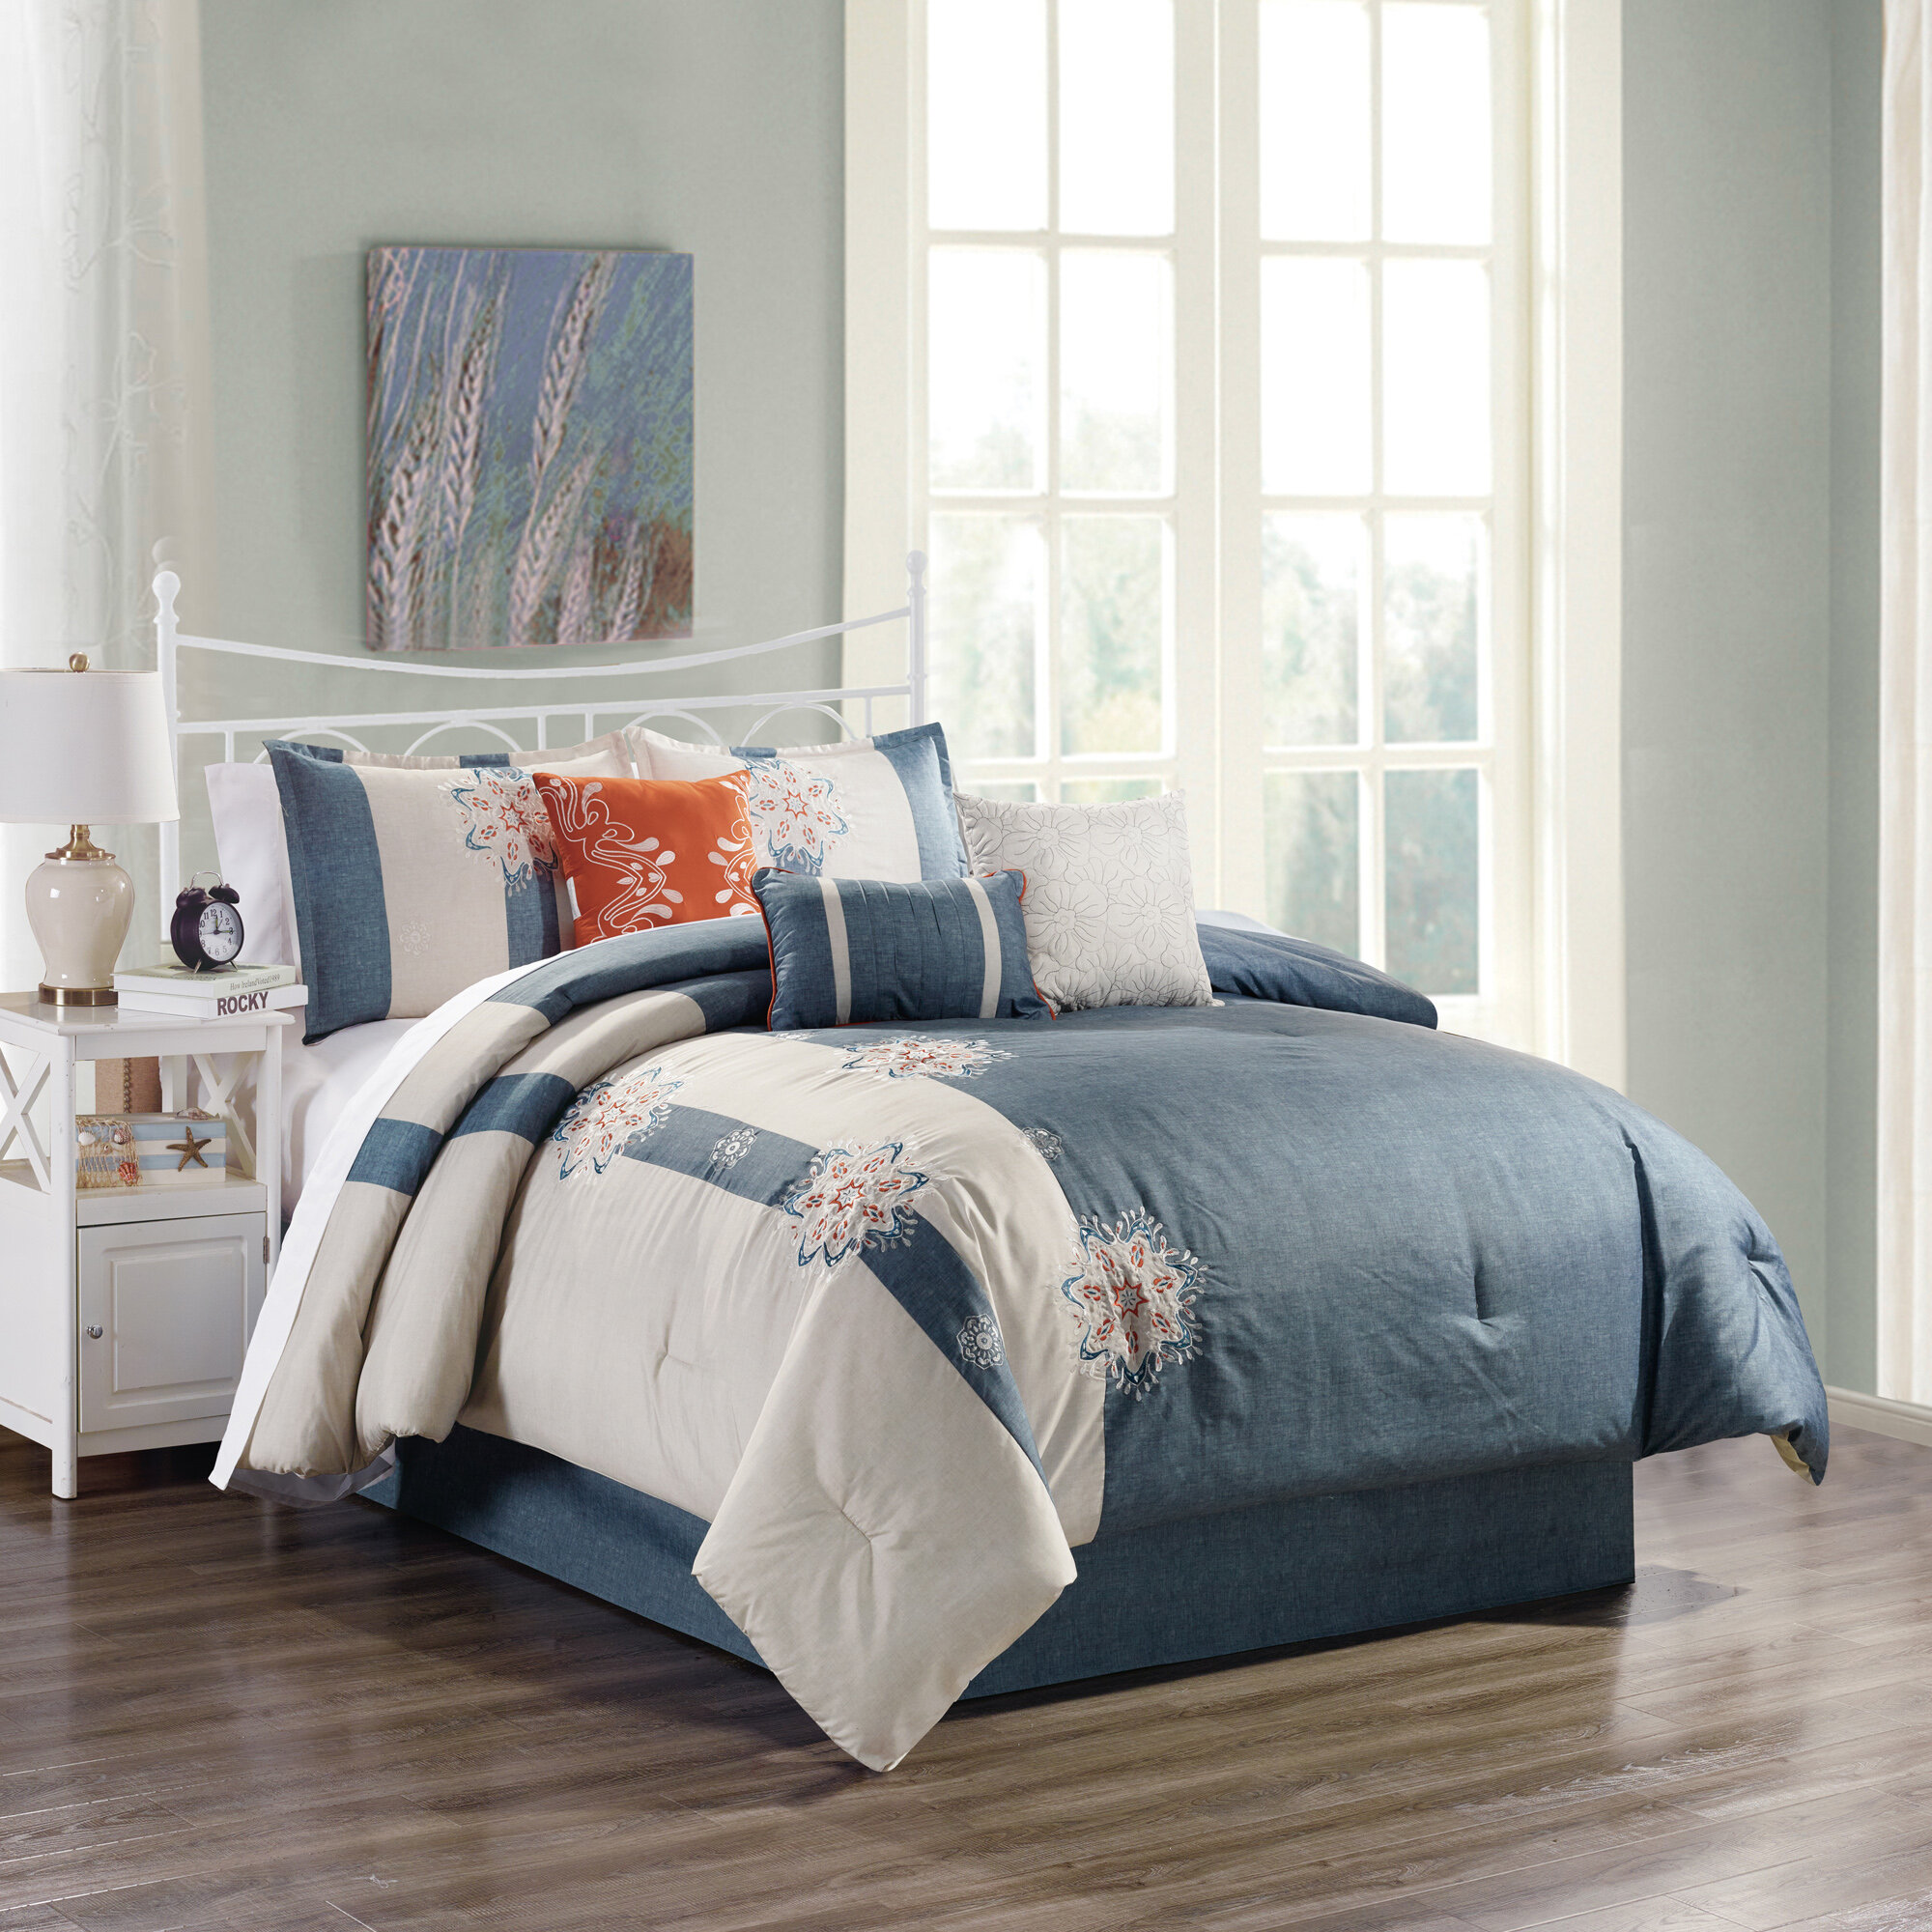 Canora Grey Holmberg Elight Home Amie Comforter Set Wayfair